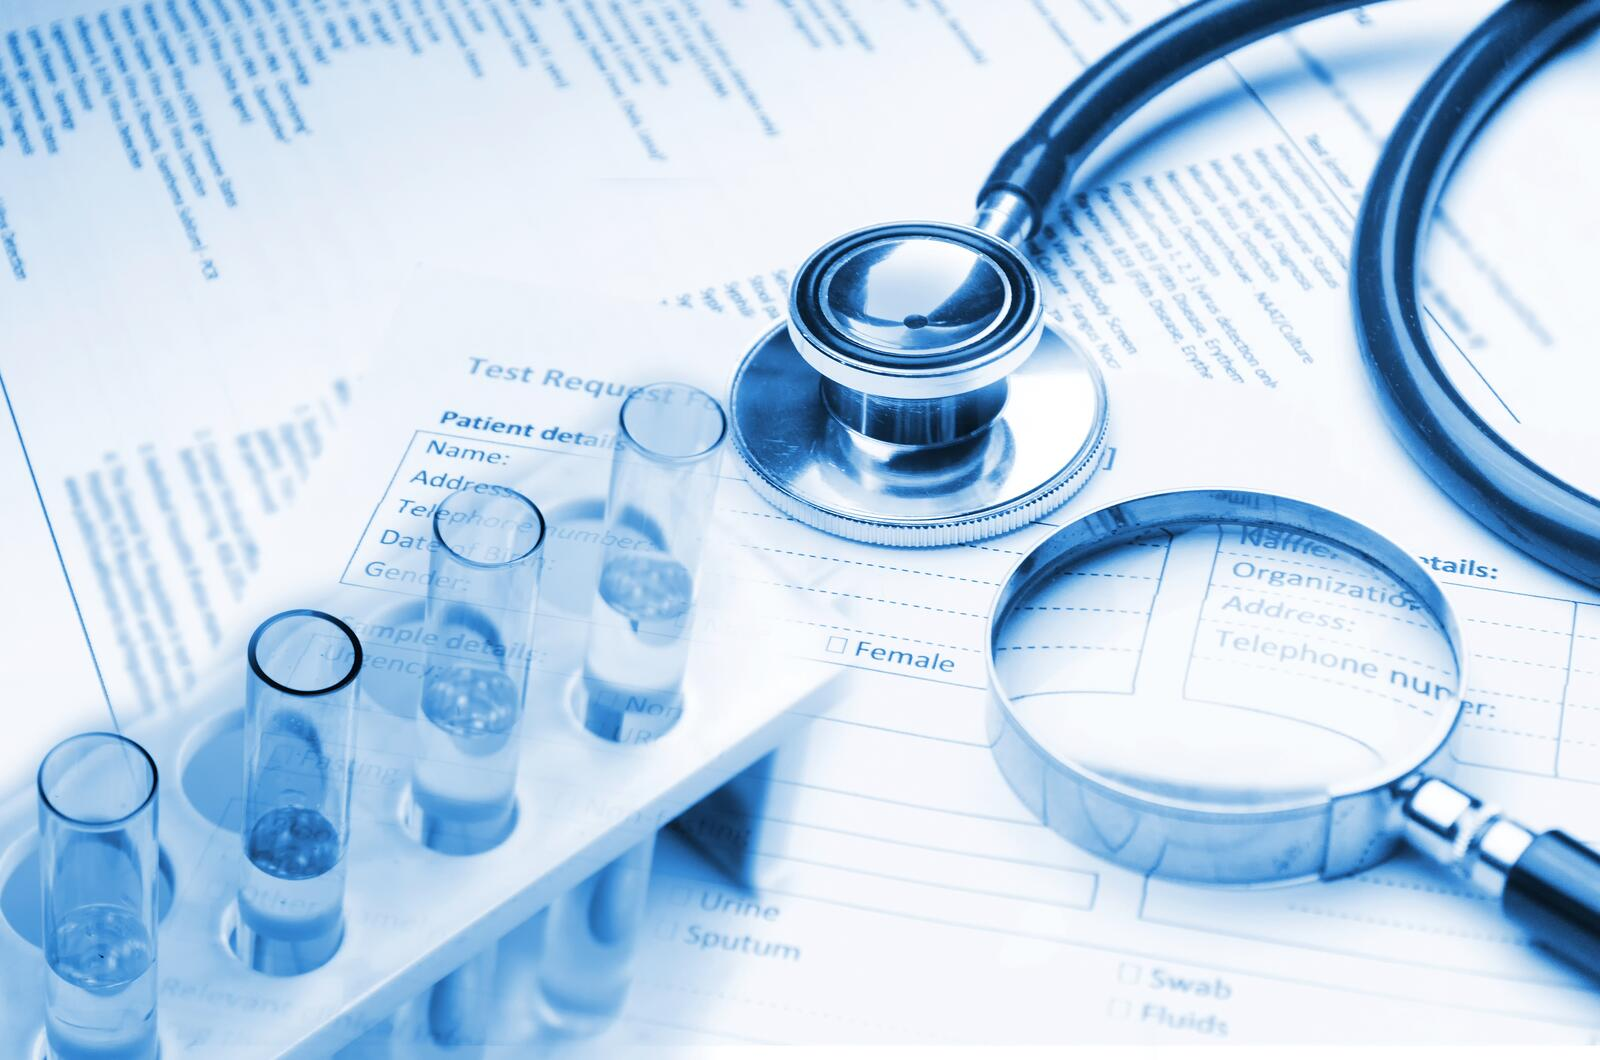 Business Solutions for Healthcare & HIPAA Compliance